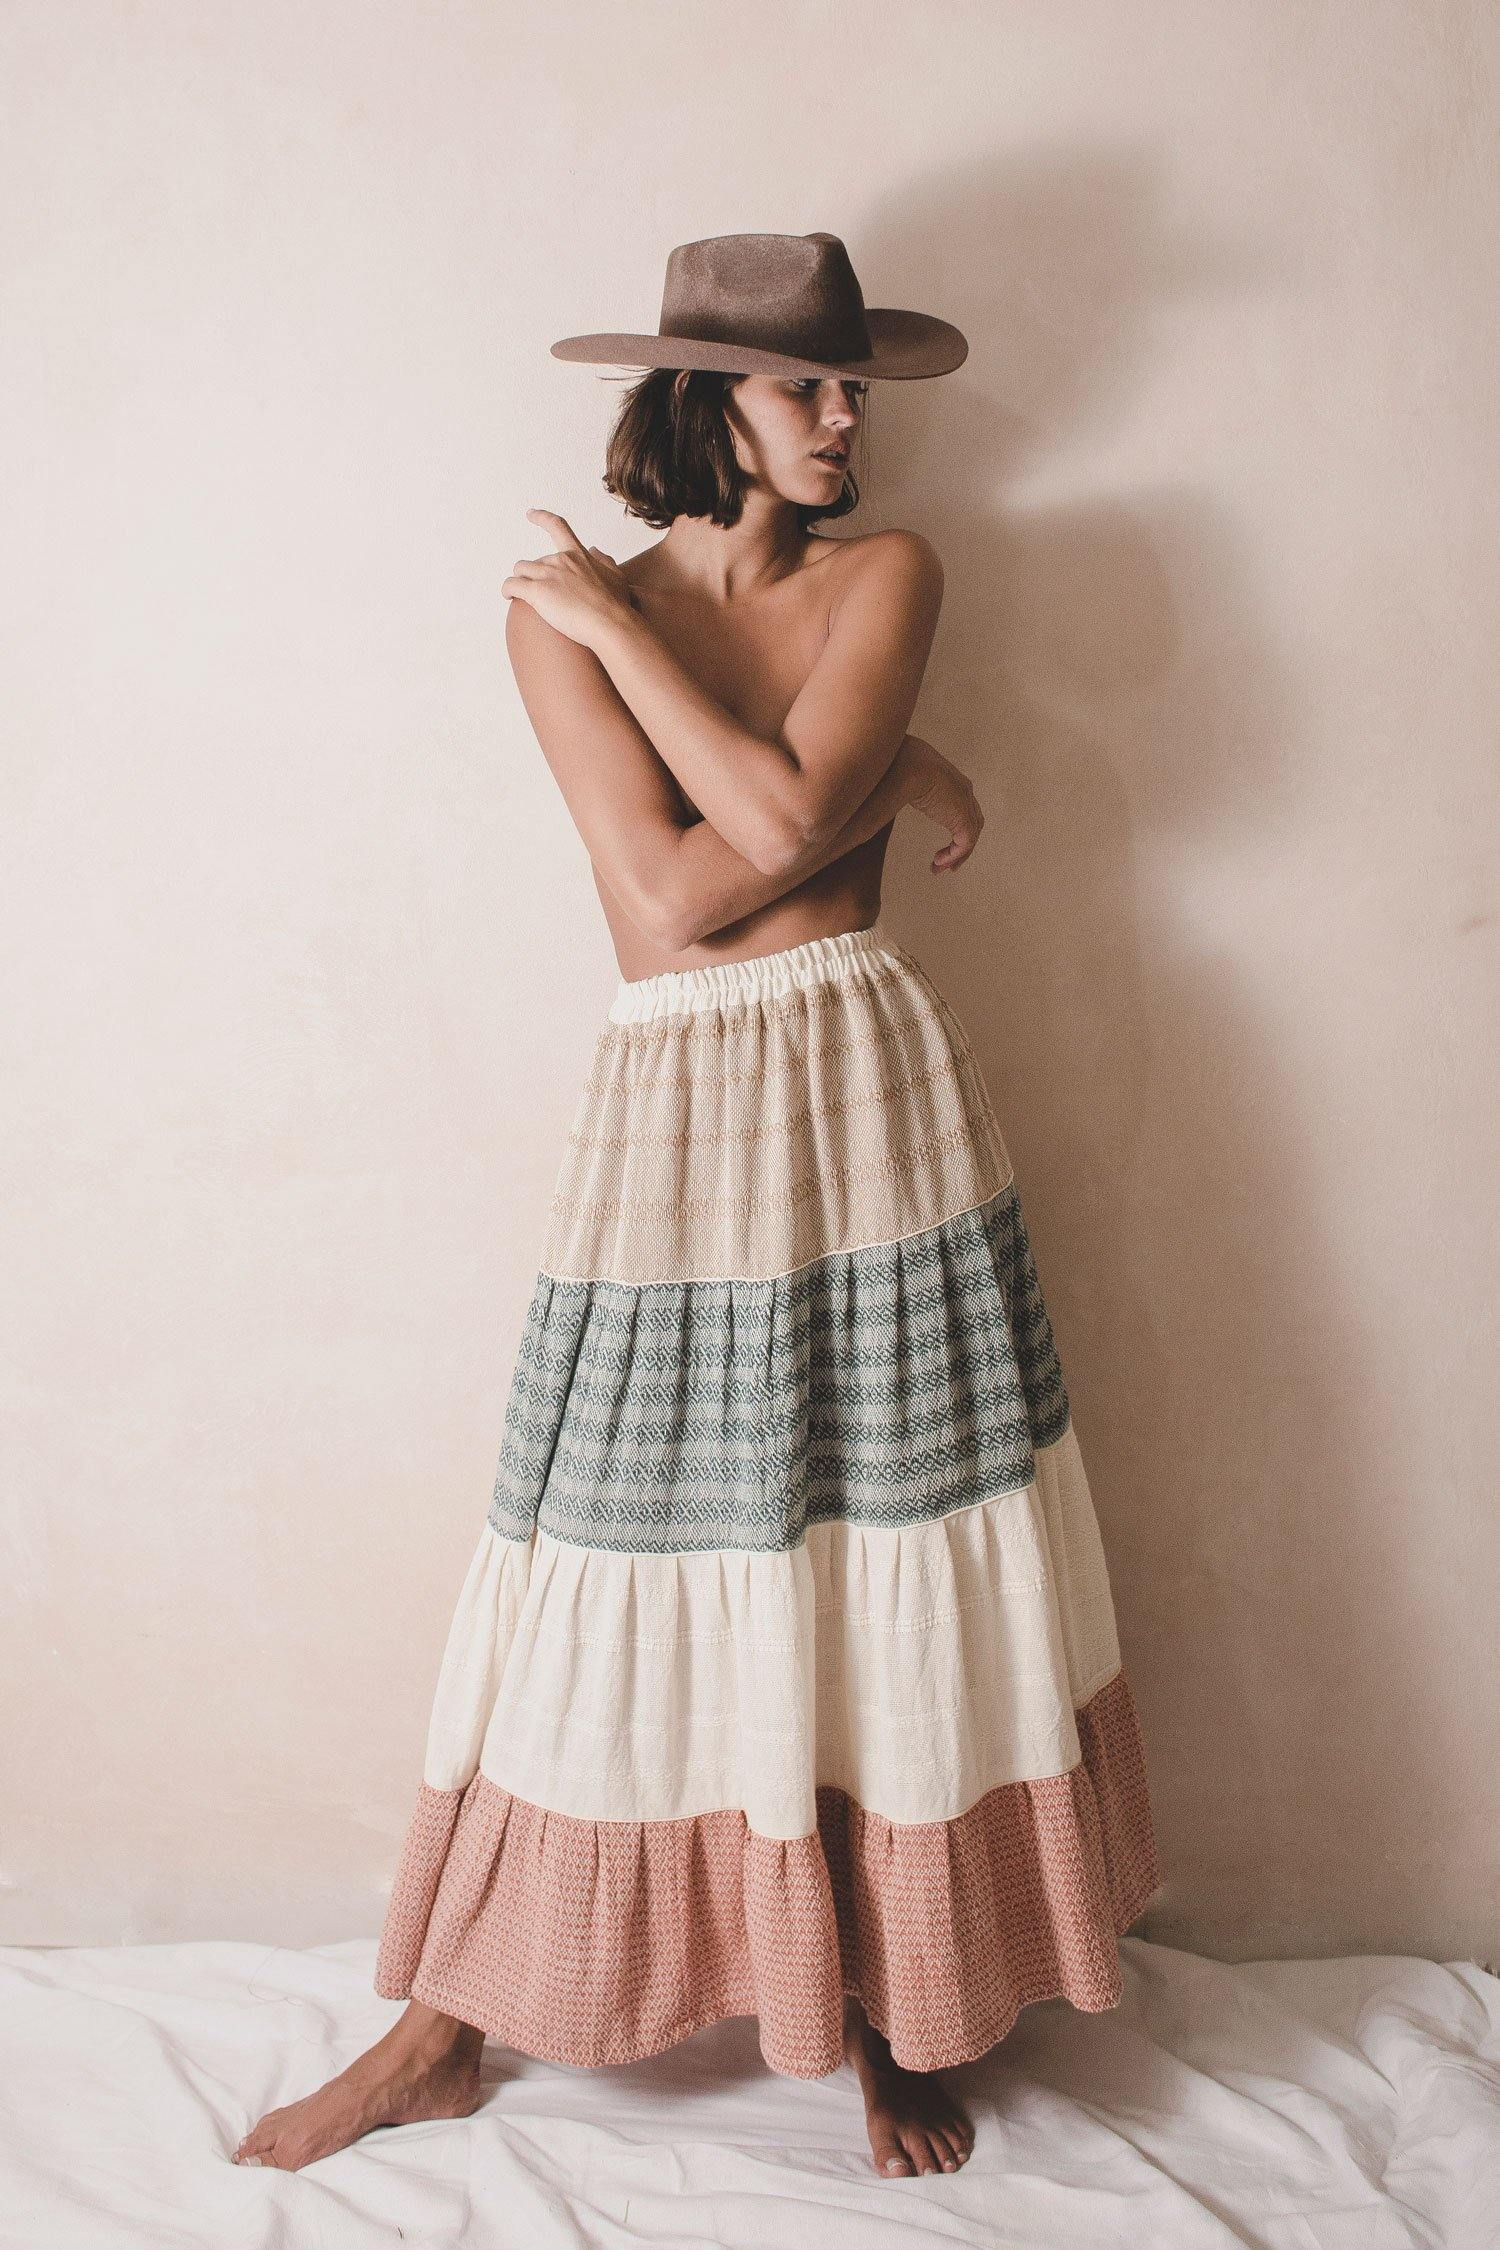 BROCATE ELENA - Handwoven Artisanal Skirt - Natural Rough